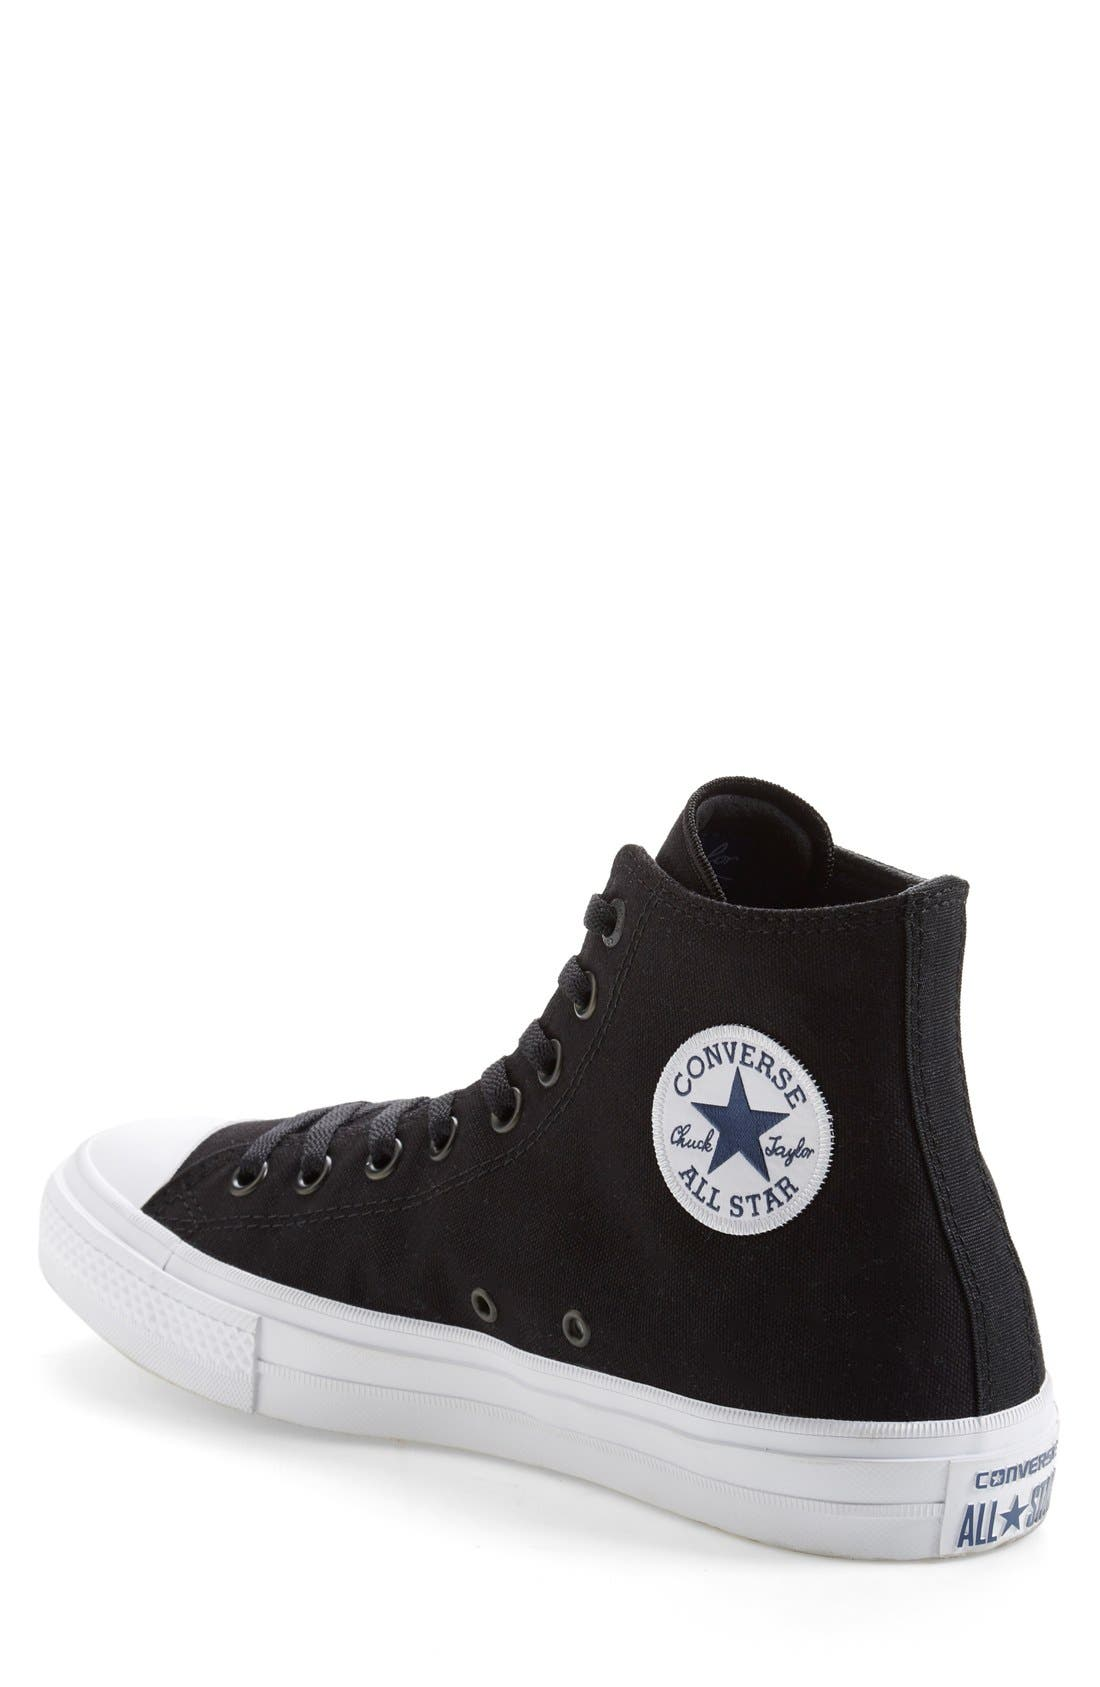 Chuck Taylor<sup>®</sup> All Star<sup>®</sup> Chuck II High Top Sneaker,                             Alternate thumbnail 4, color,                             Black/ White/ Navy Canvas